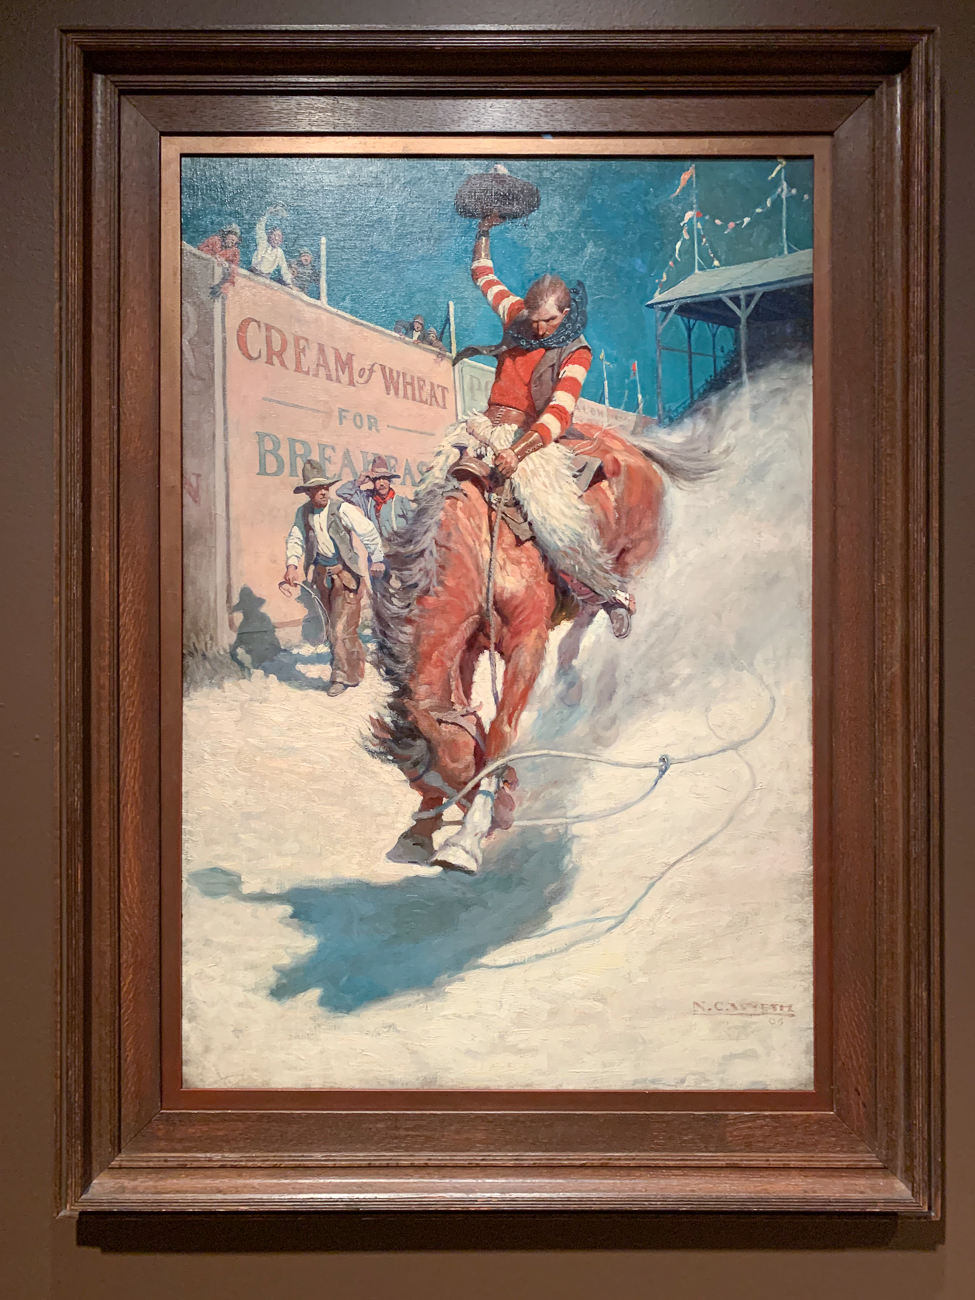 Having studied at the Howard Pyle School of Art in Delaware, Wyeth's love of Native Americans and the American West informed much of his early work. His commissioned paintings often showcased an intense amount of drama, movement, and adventure. / Image: Phil Armstrong, Cincinnati Refined // Published: 2.9.20